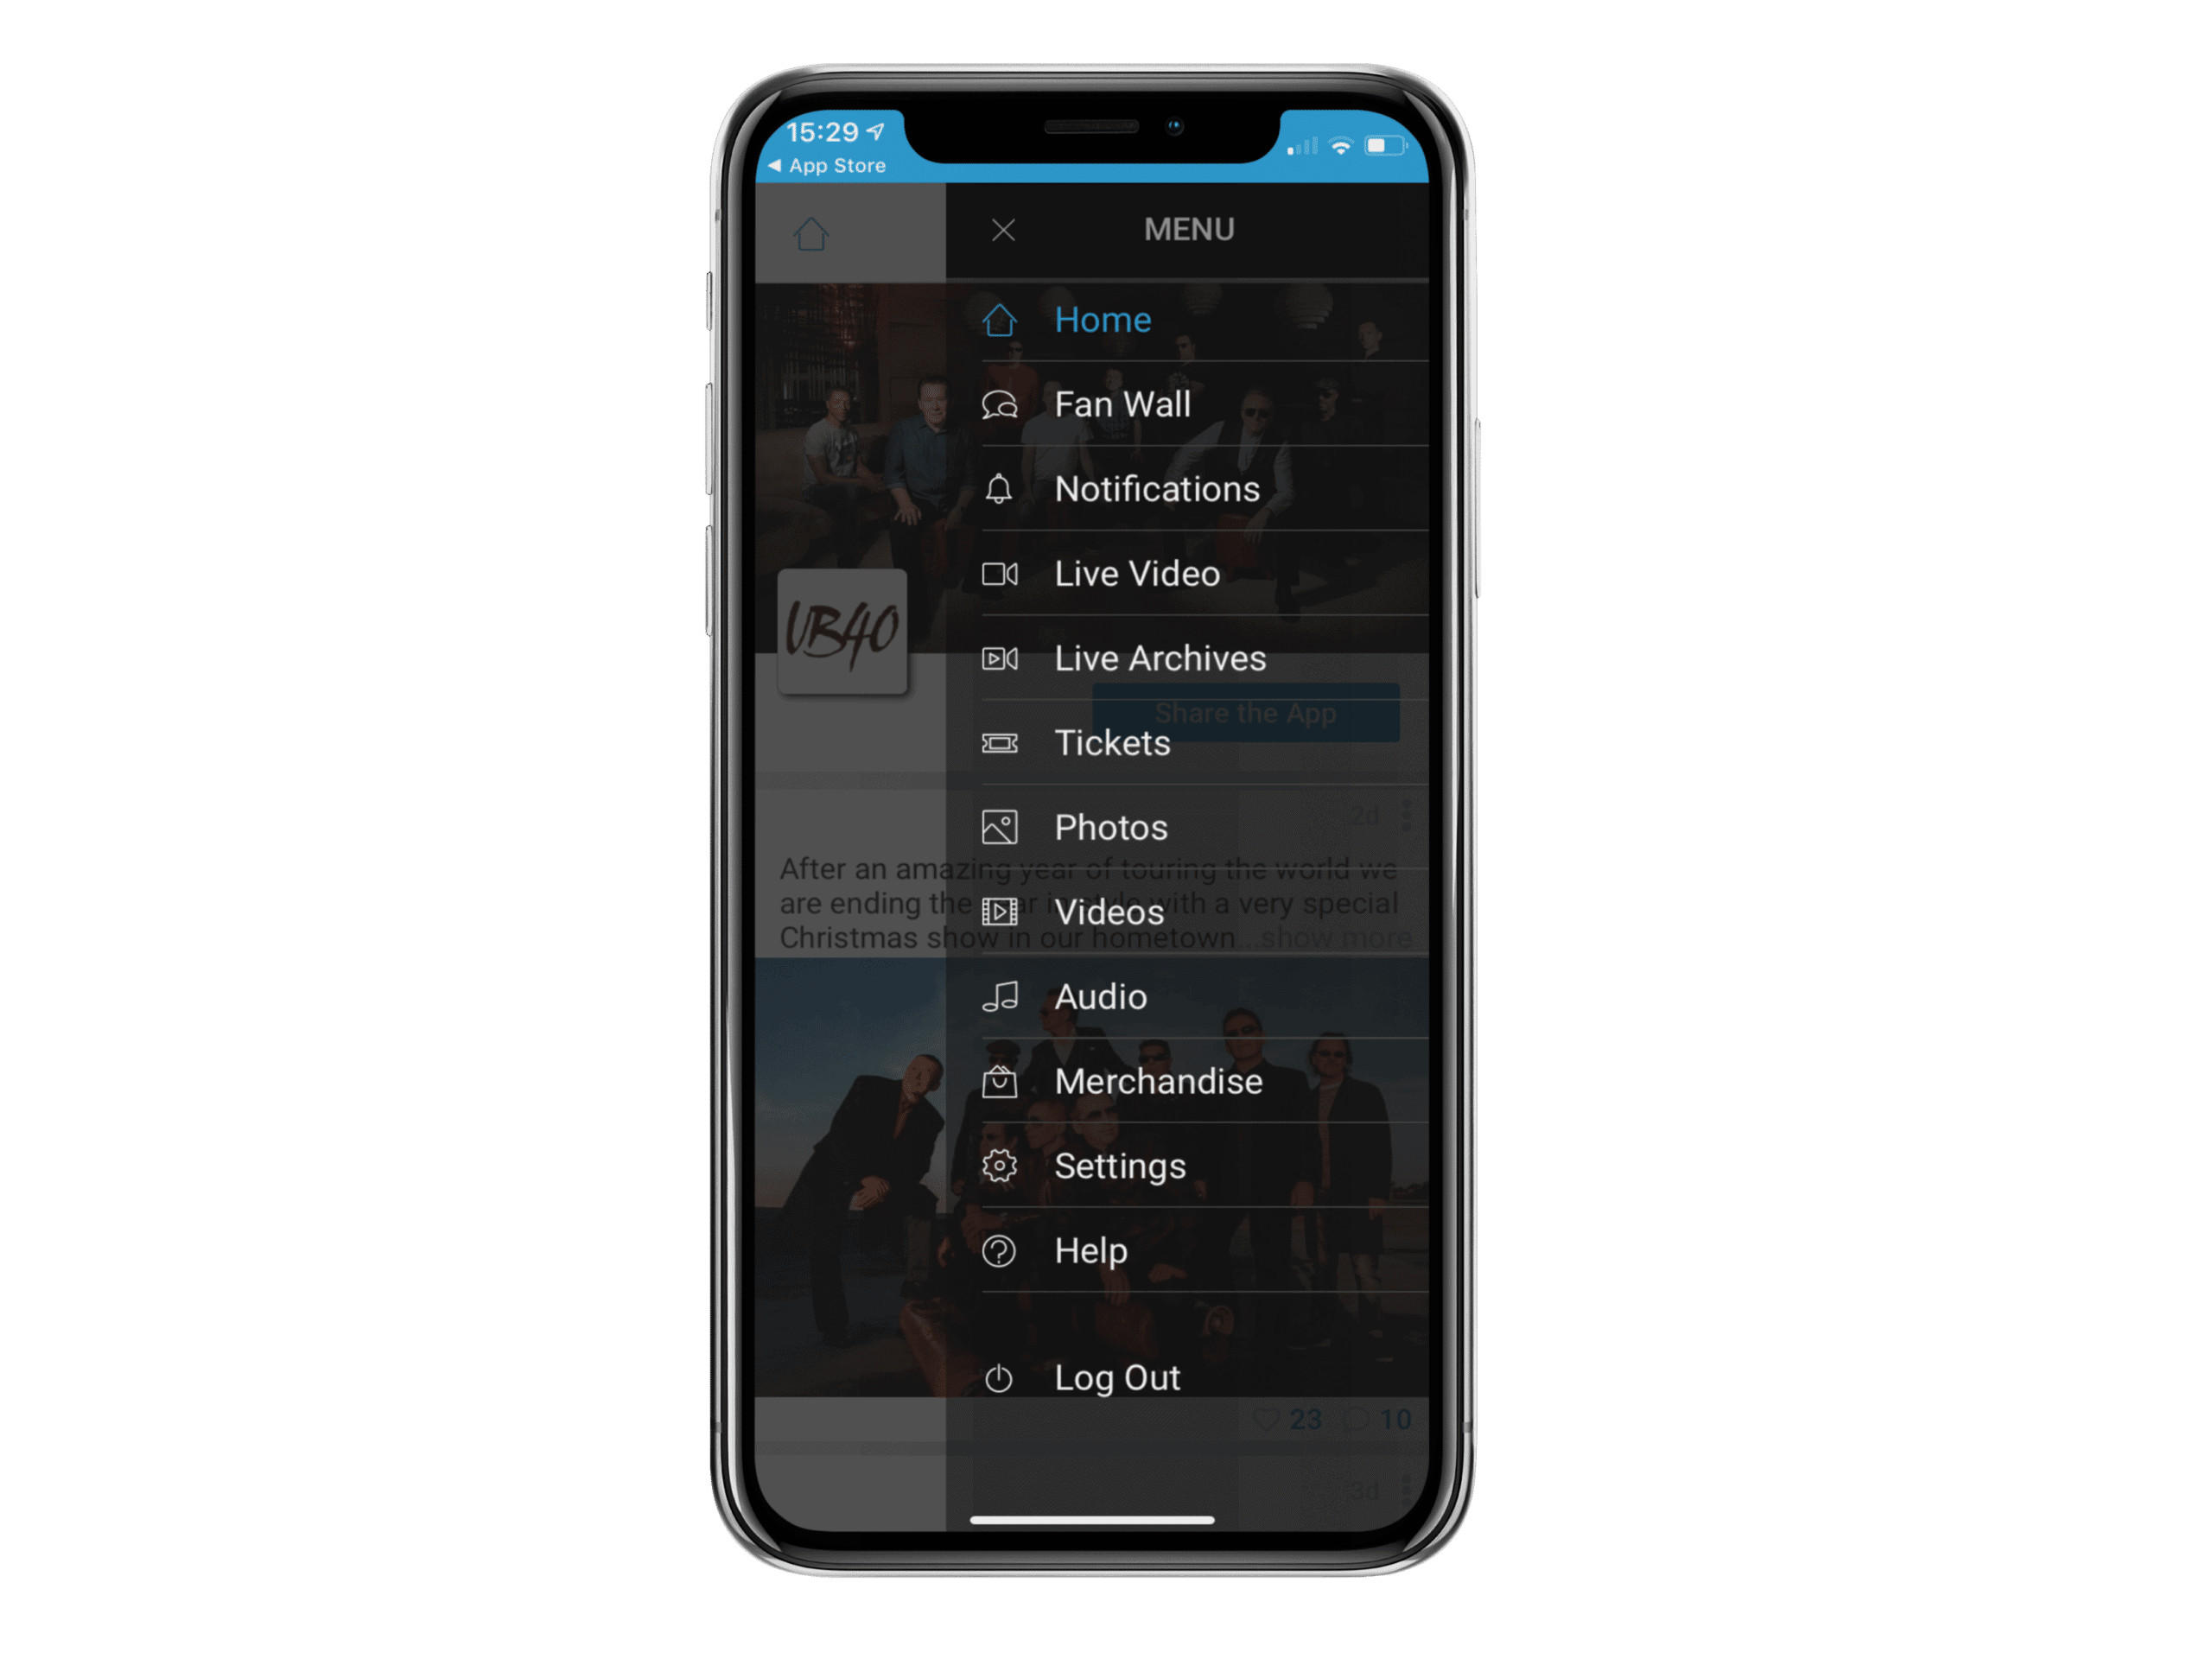 iphone x mockup against transparent background a17152 copy 3 How To Build Fan Engagement The Easy Way